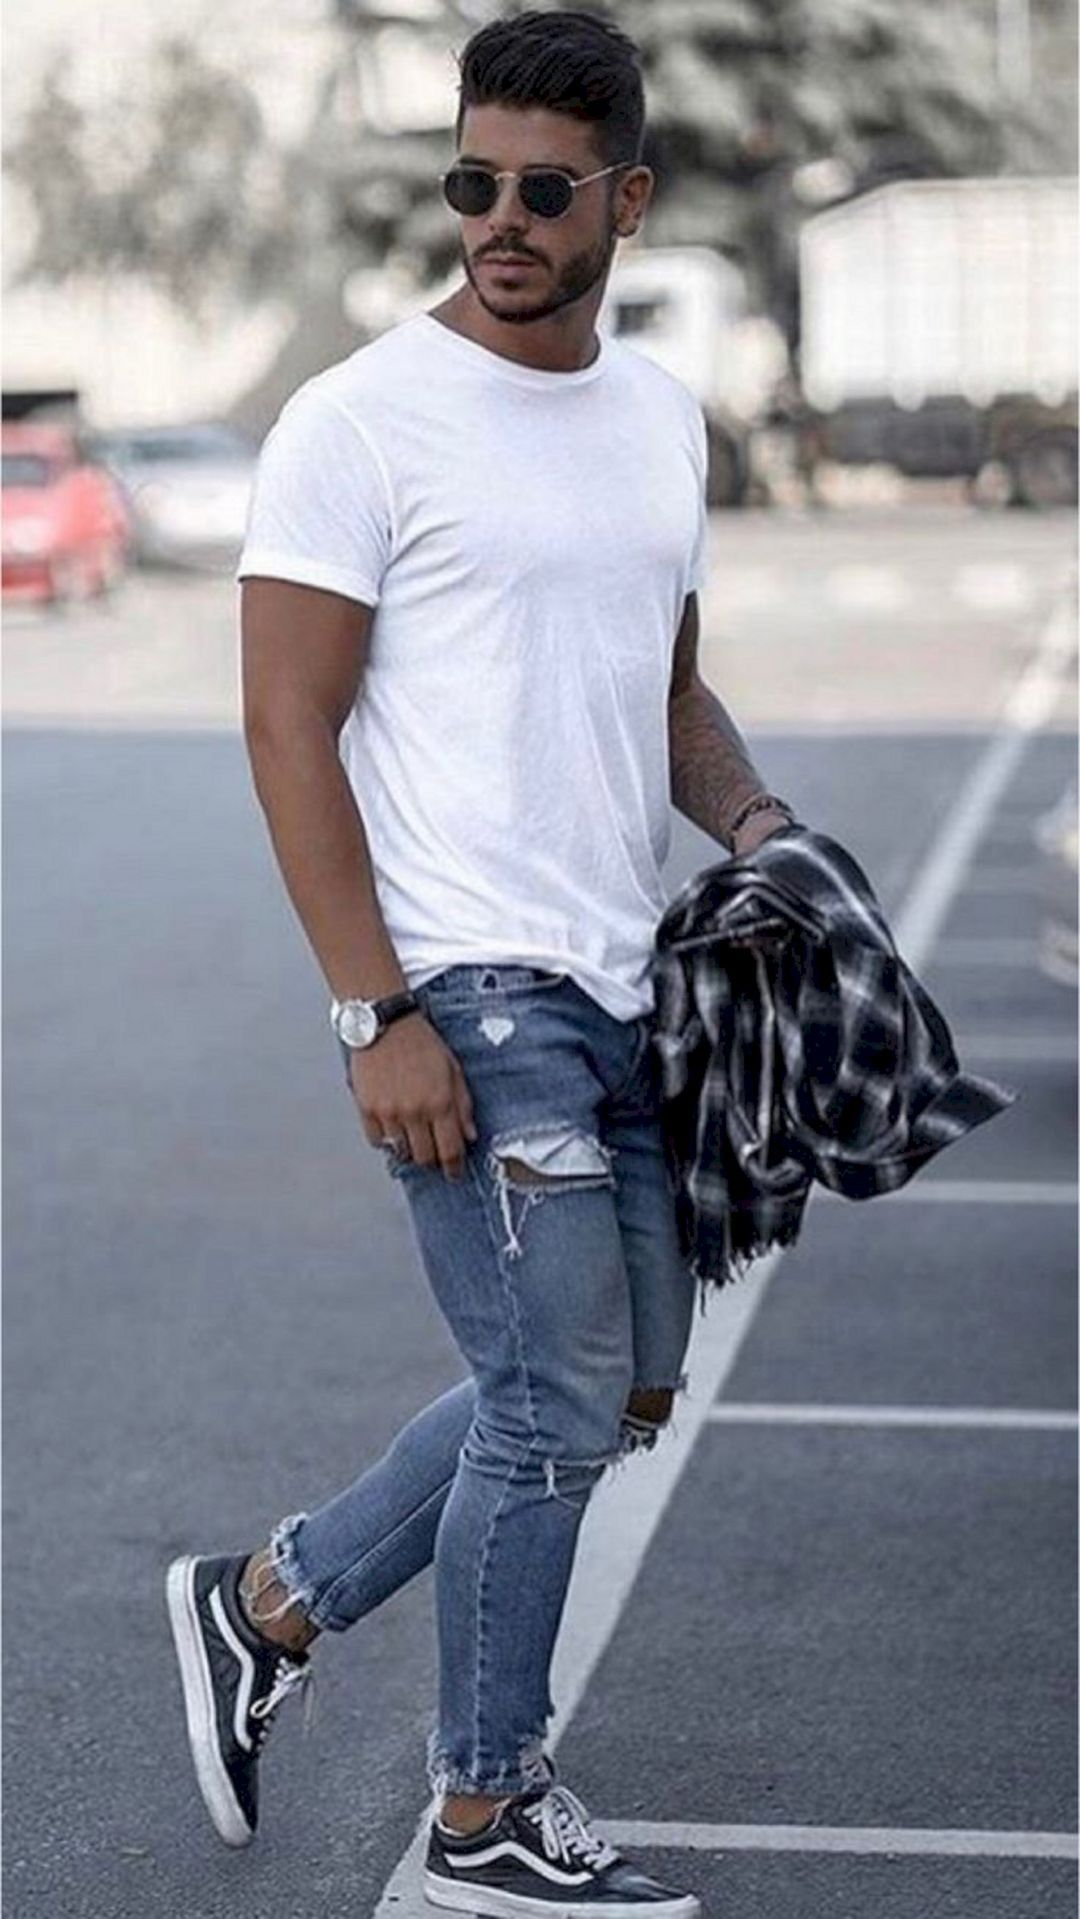 20 Casual White T Shirt For Men That Makes You Look More